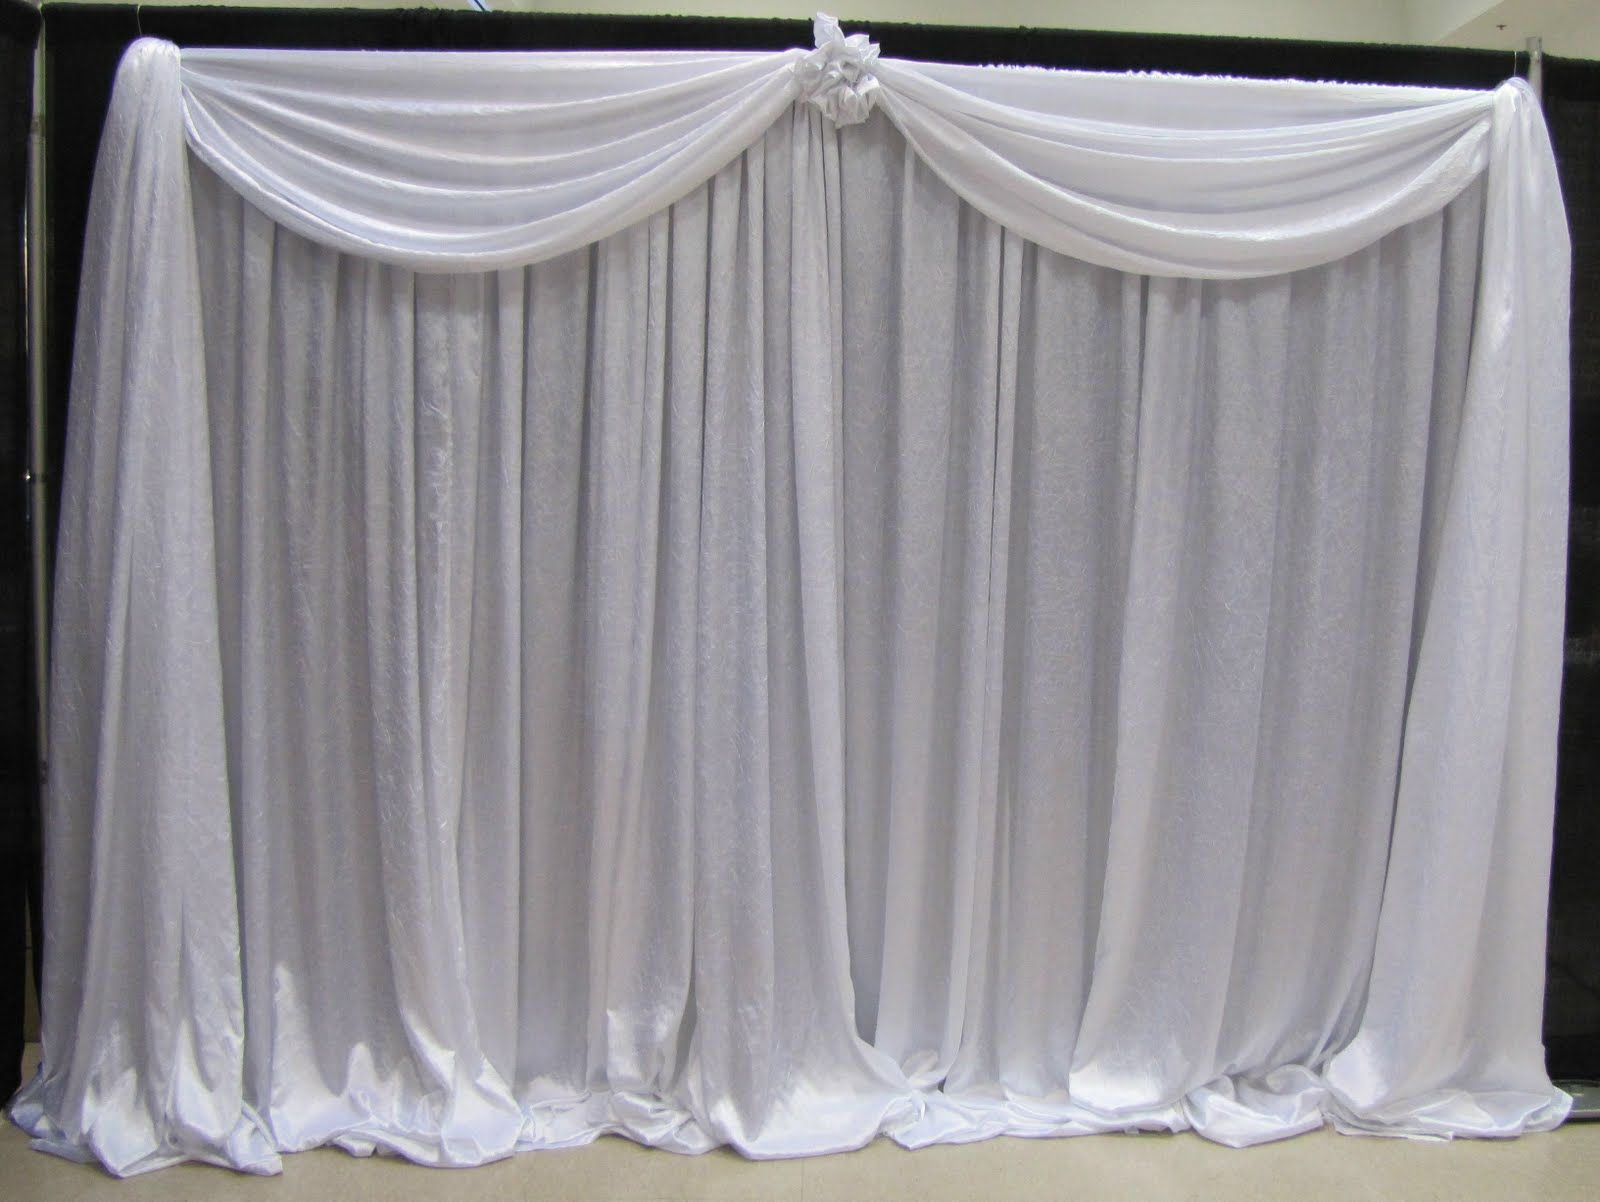 rod on cheap pvc and diy budget drape rods drapes pipe stylish ideas rope curtain